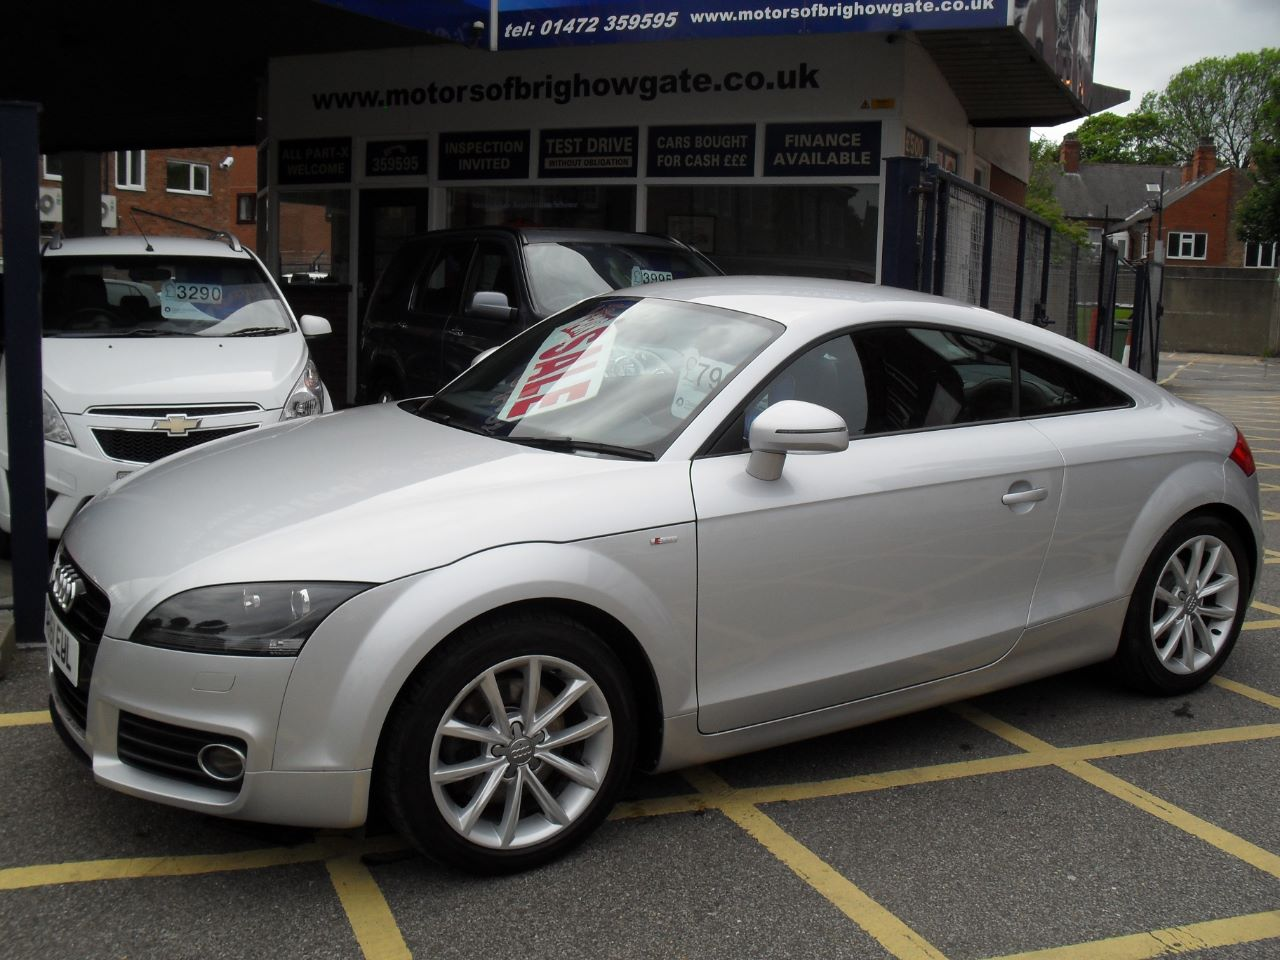 Audi TT 2.0 TDI Quattro Sport [2011] Coupe Diesel Silver at Motors of Brighowgate Grimsby